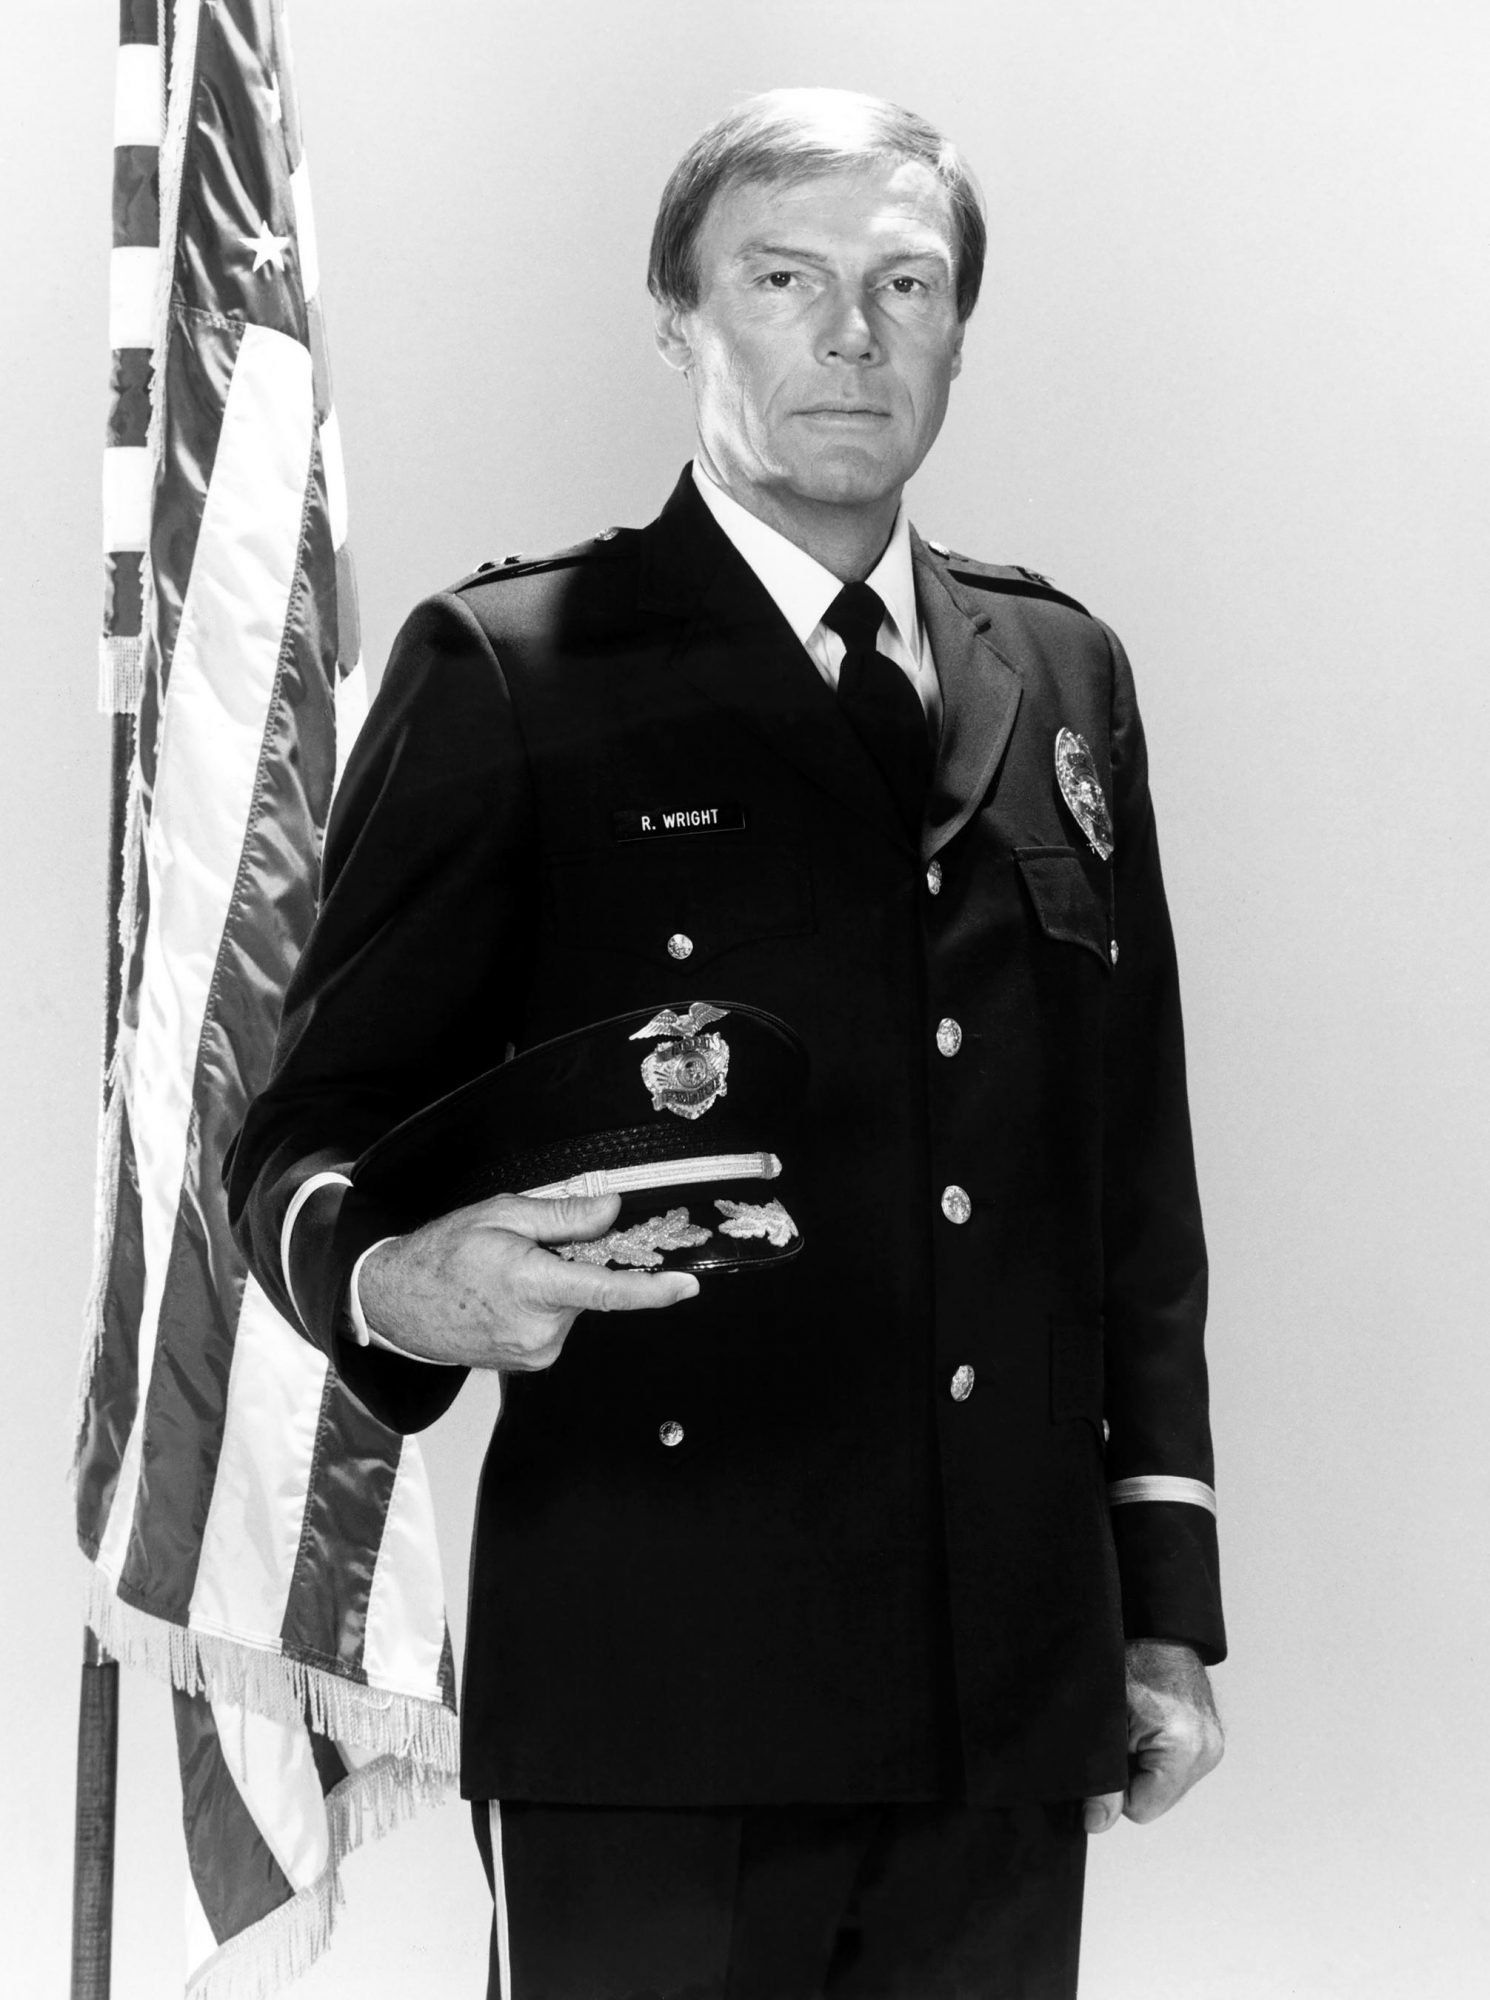 THE LAST PRECINCT, Adam West, 1986, © Stephen J. Cannell Prod. / Courtesy: Everett Collection